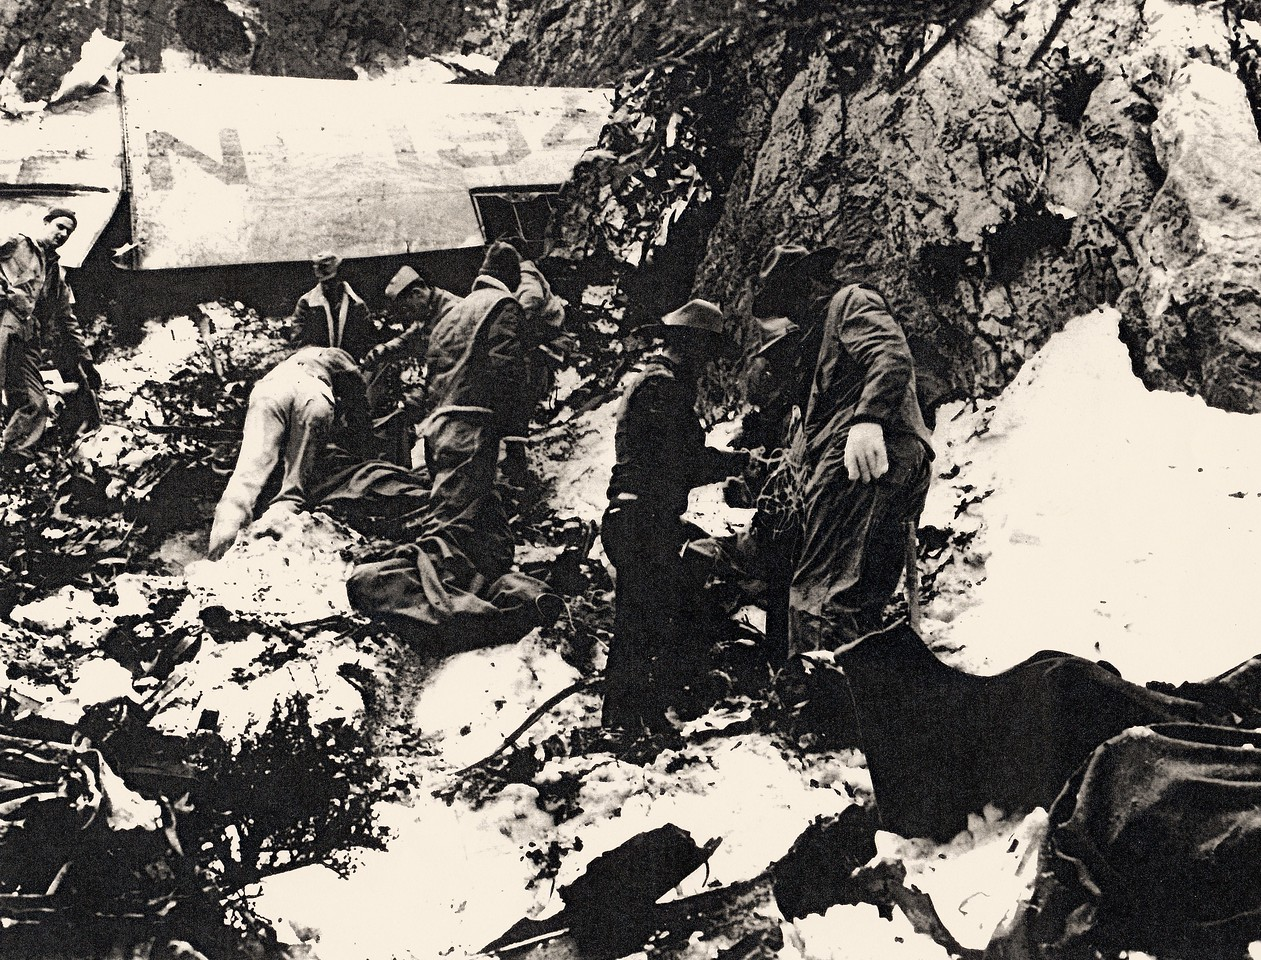 THE RECOVERY OPERATION - 1942<br /> <br /> Recovery team members sifting through the wreckage. (Bettman Archives)